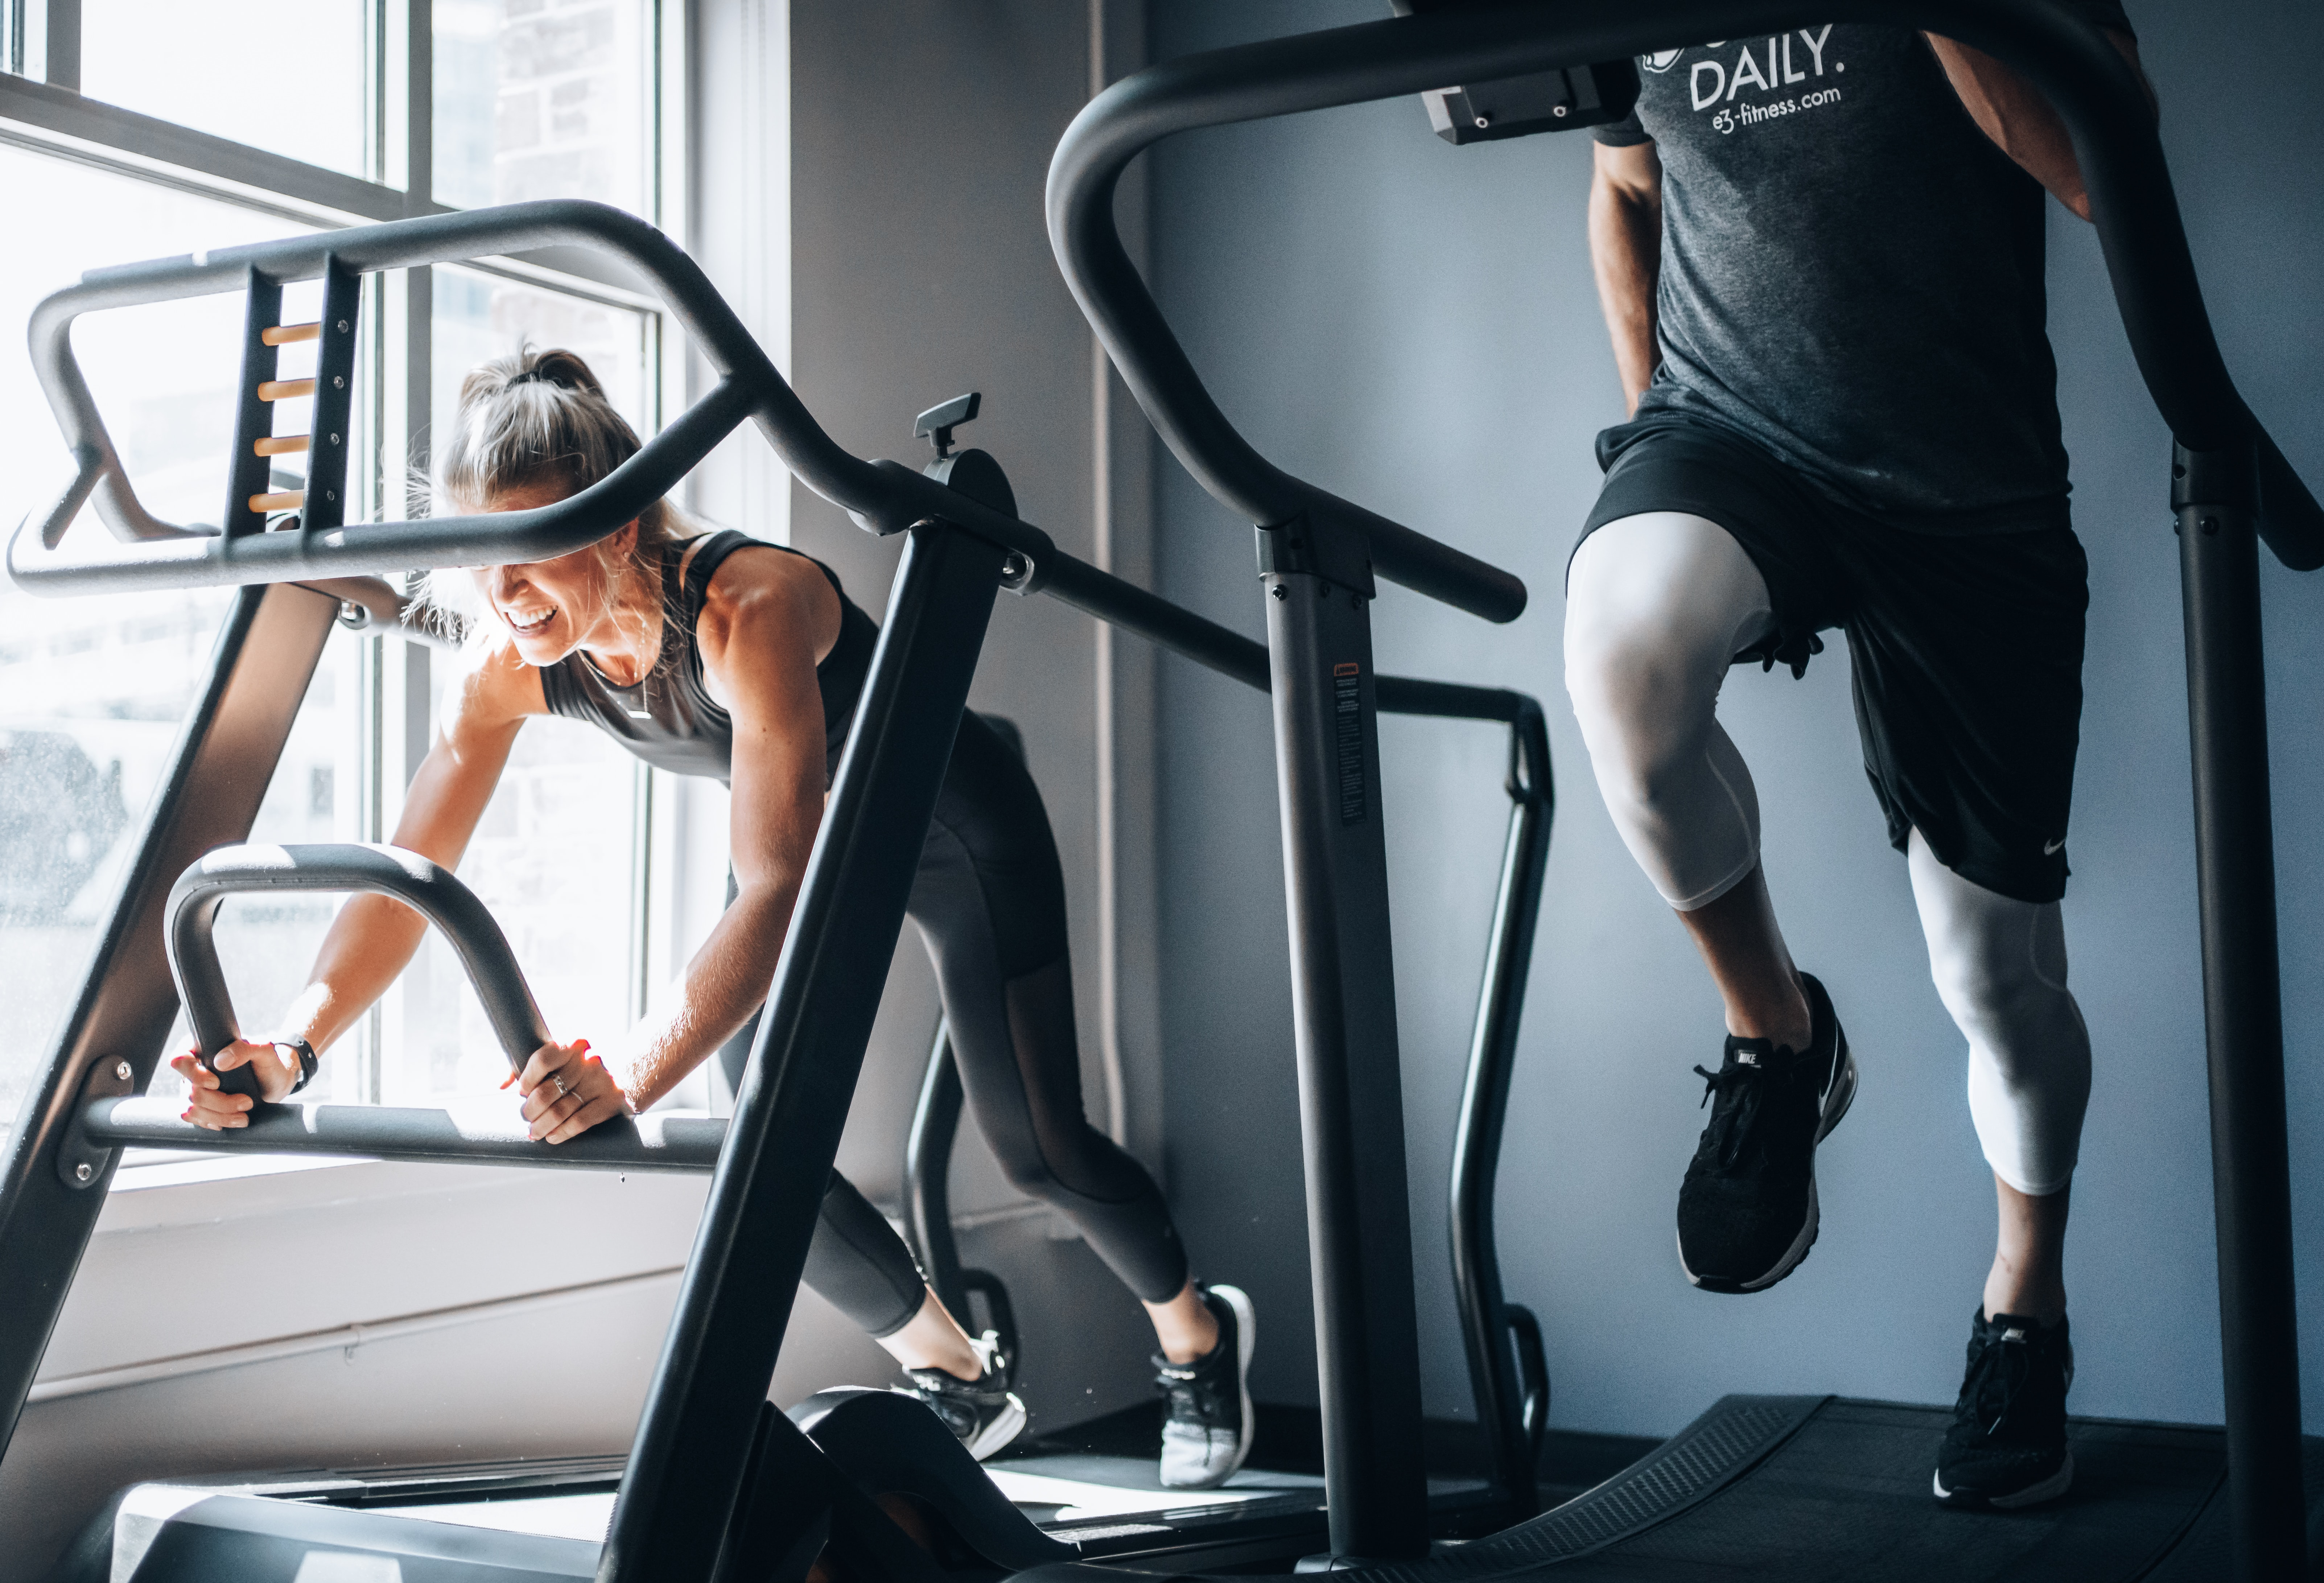 How To Manage A Gym — Top 6 Gym Management Tips - Clubworx